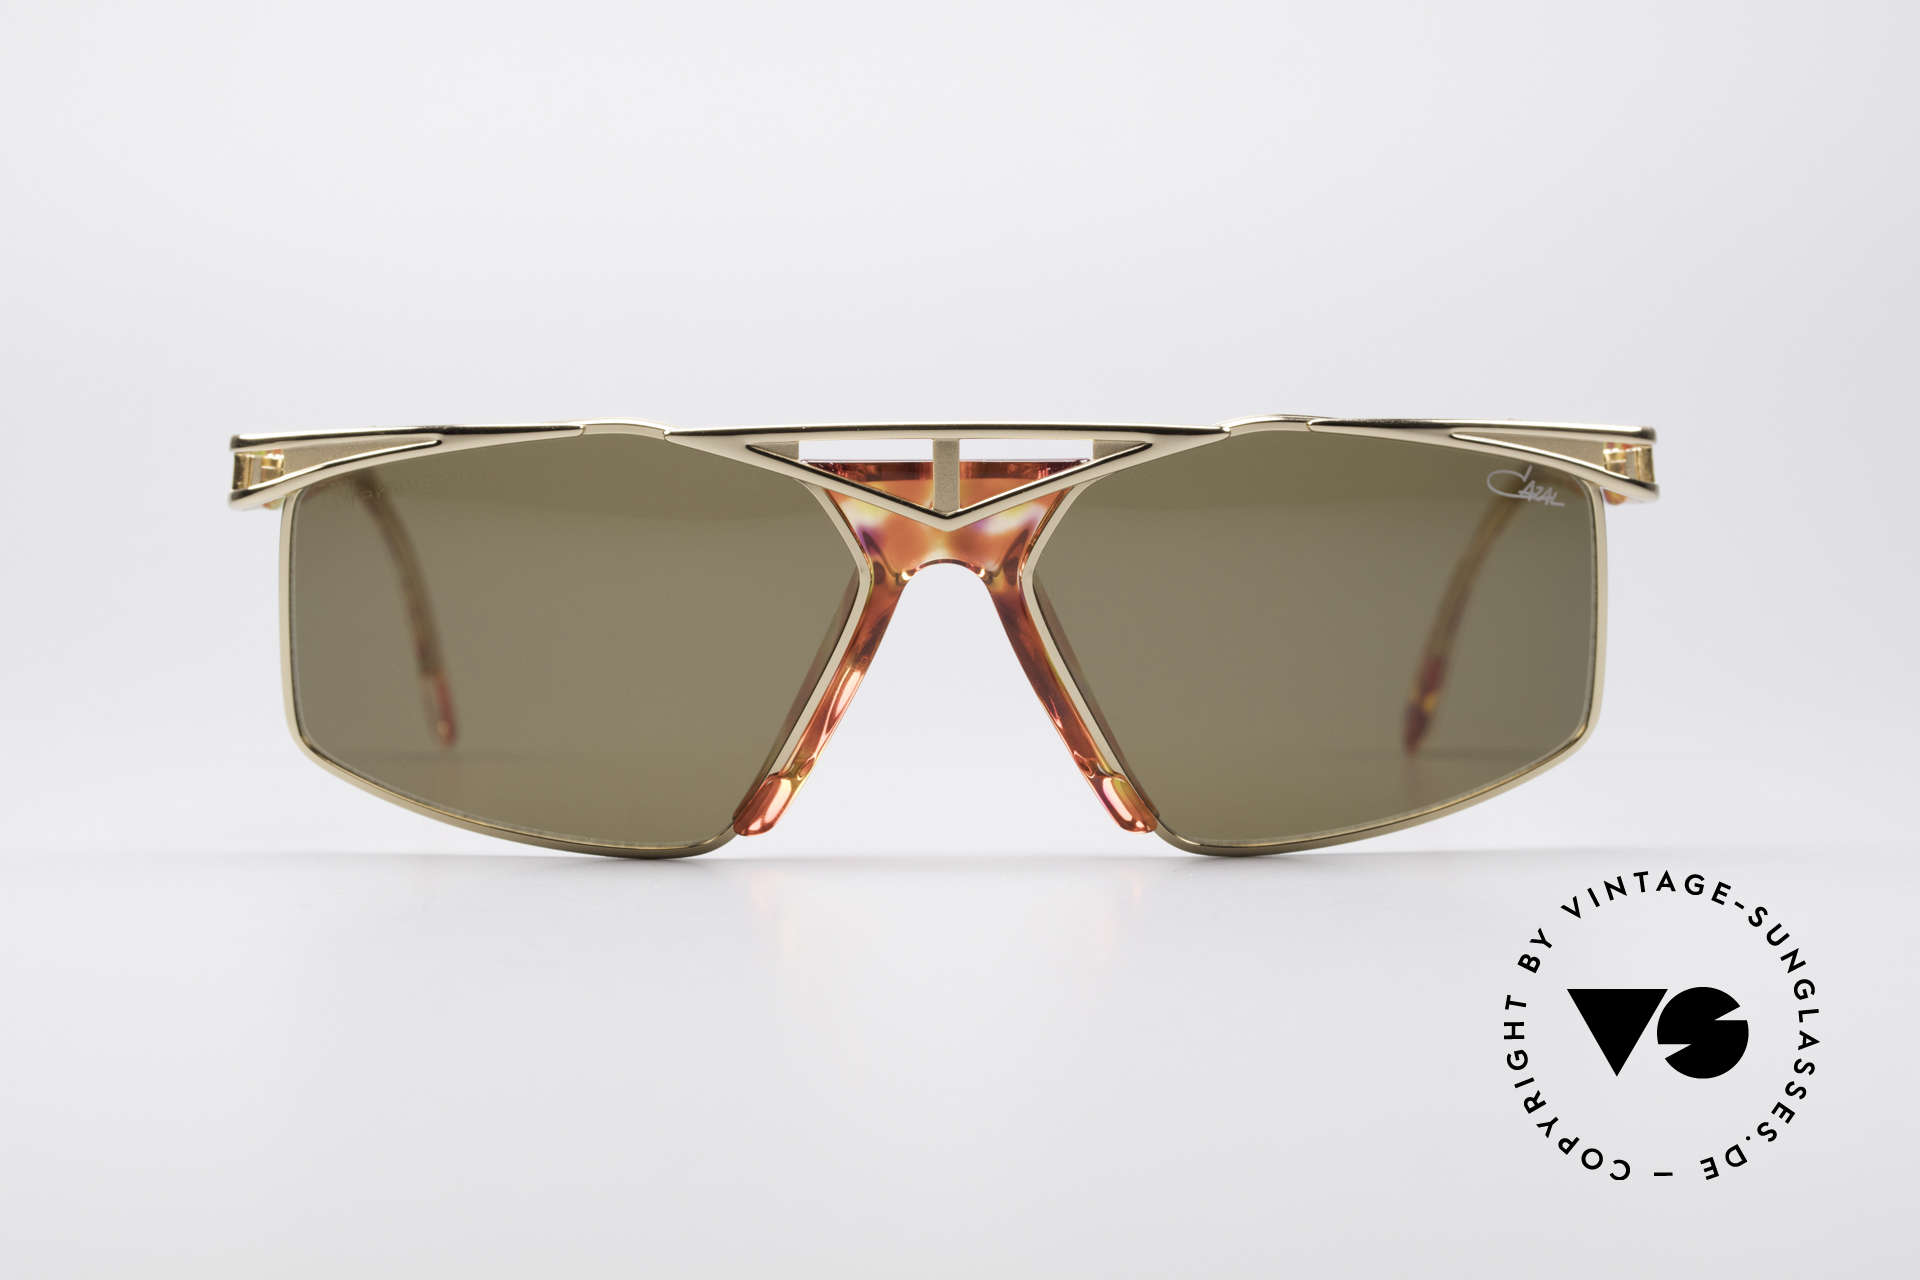 Cazal 962 Sporty Vintage Shades, top wearing comfort thanks to 1st class craftsmanship, Made for Men and Women